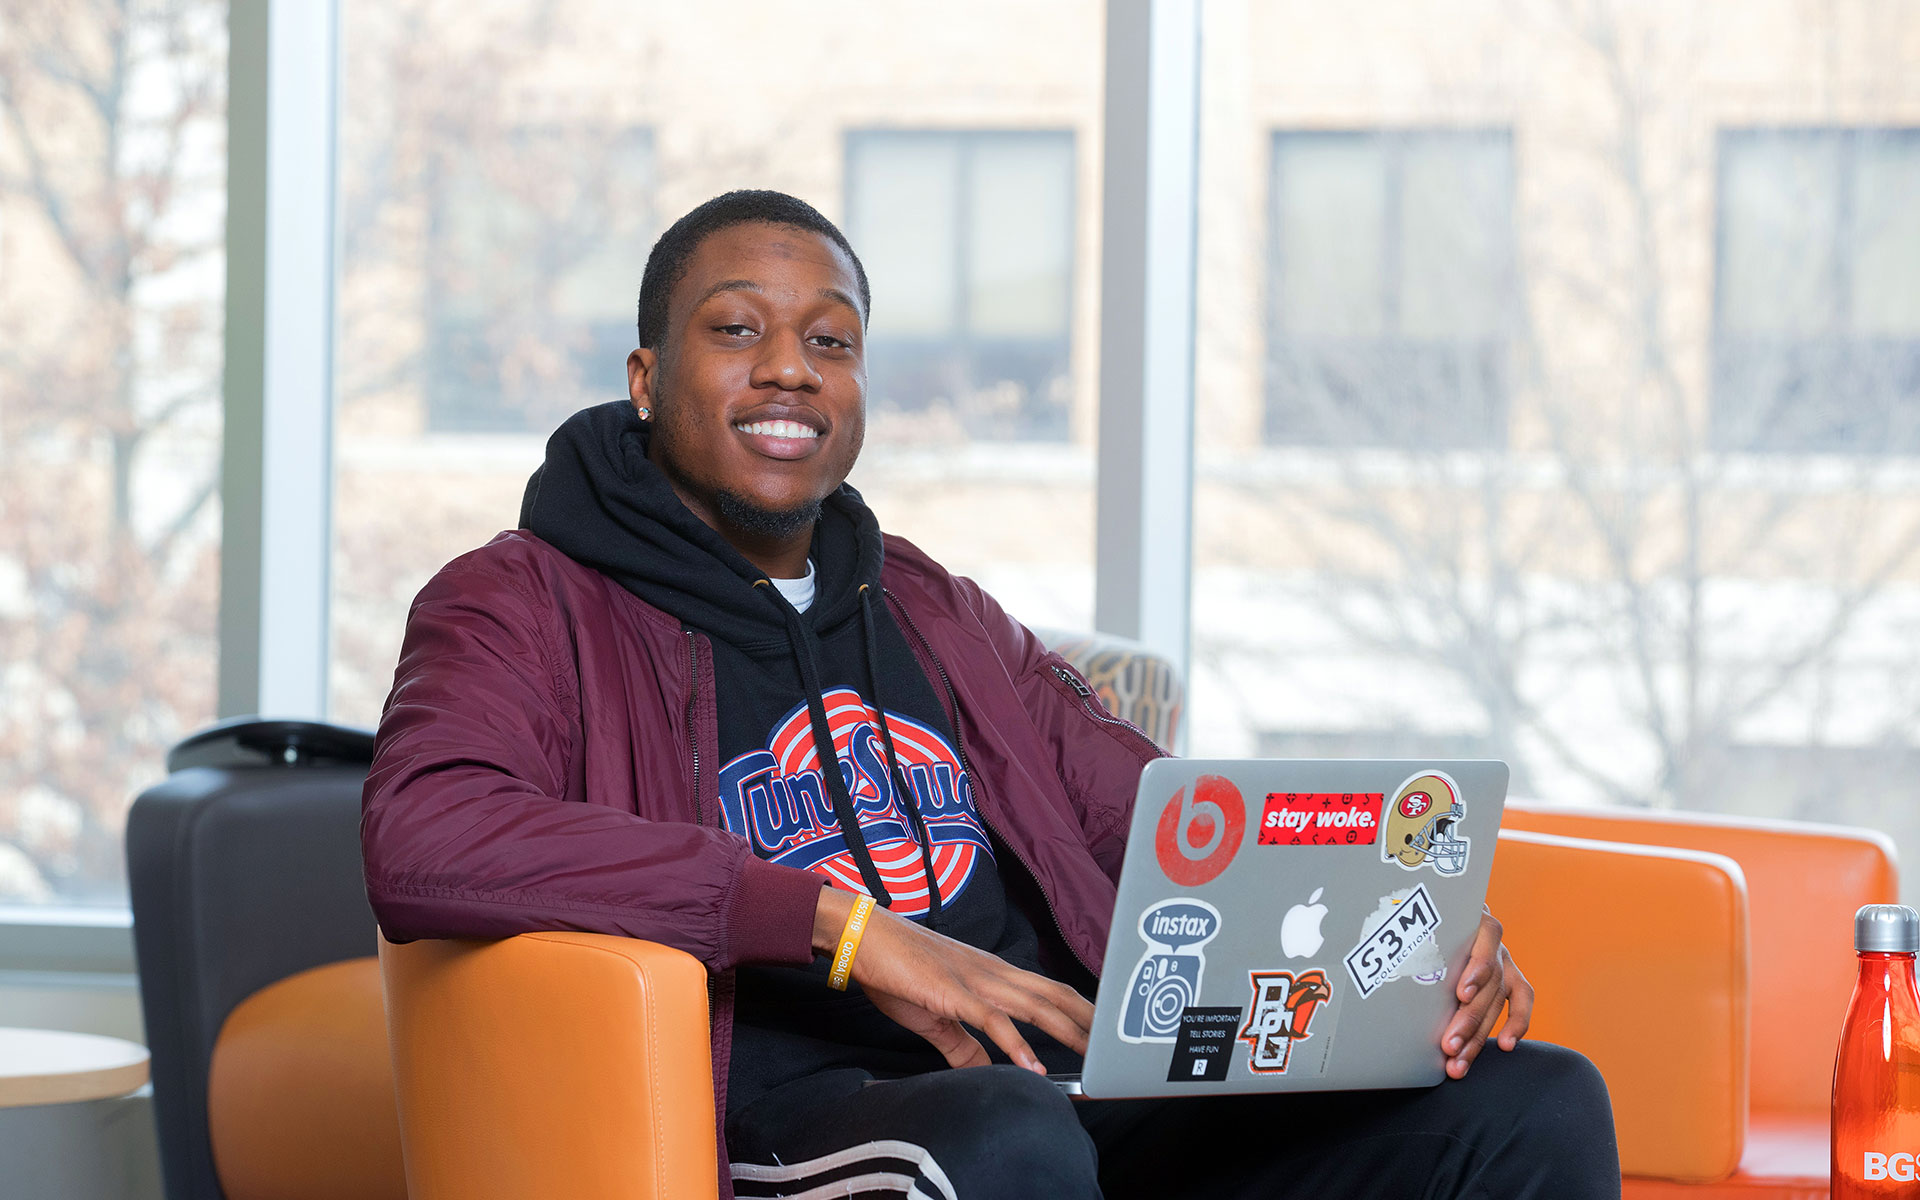 Student using laptop in union smiling at camera